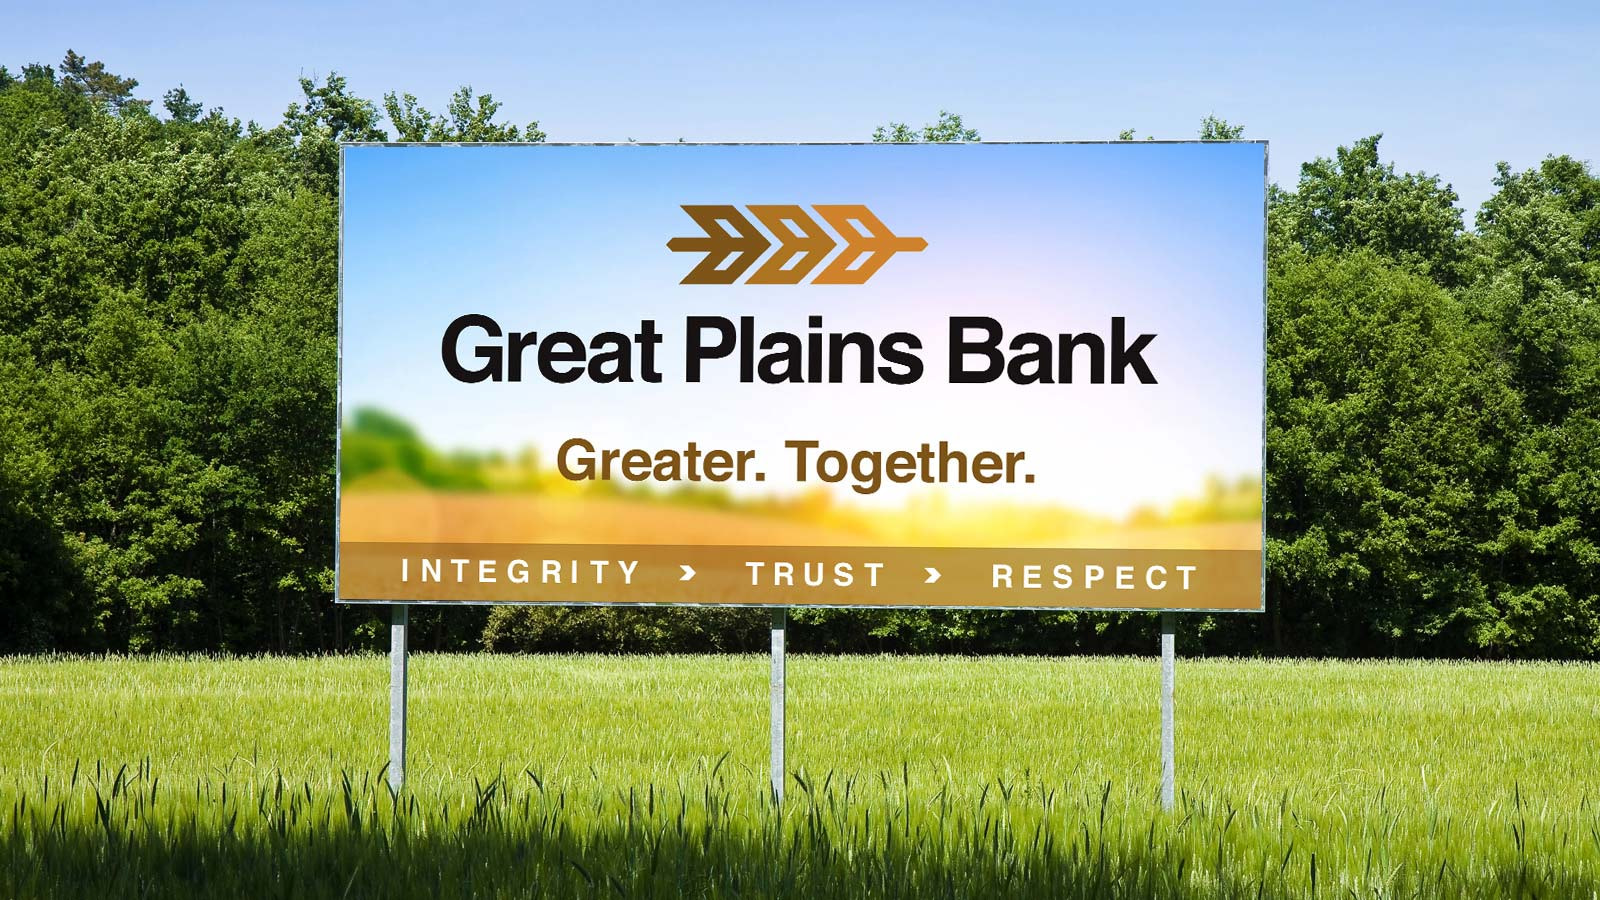 Great Plains Bank - outdoor billboard with new brand design logo